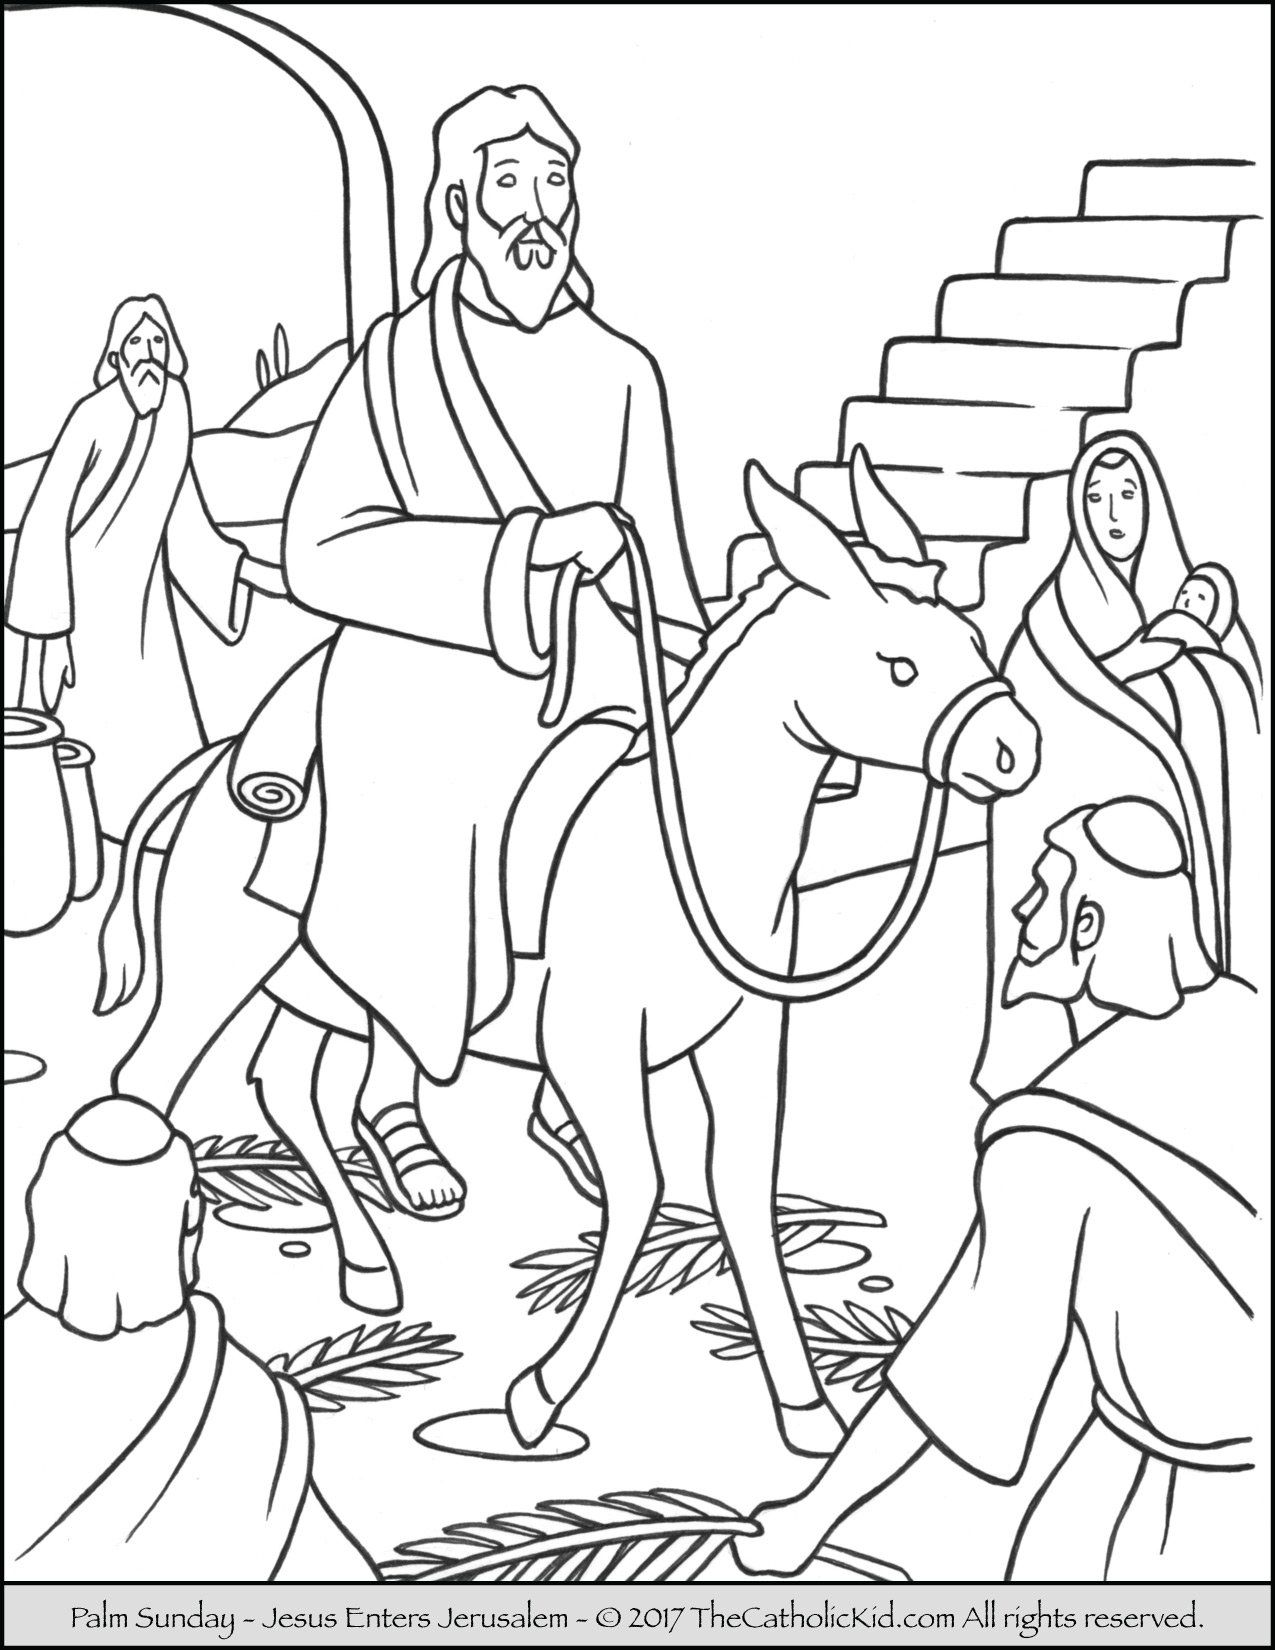 Free coloring pages for palm sunday - Palm Sunday Coloring Page